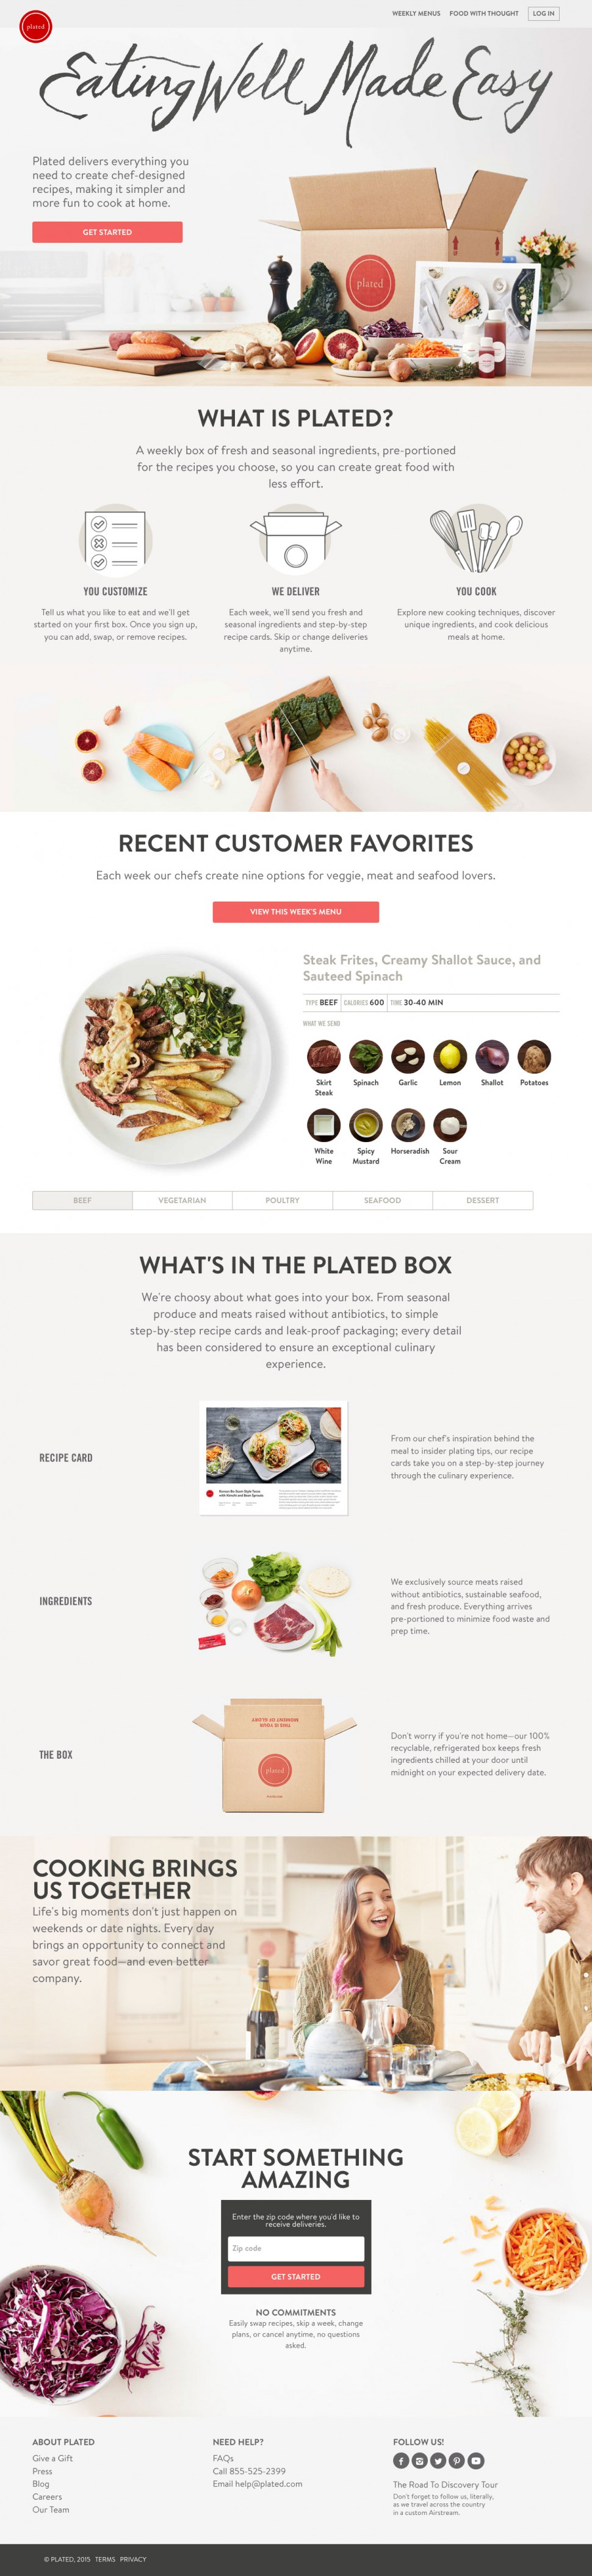 plated - landing page